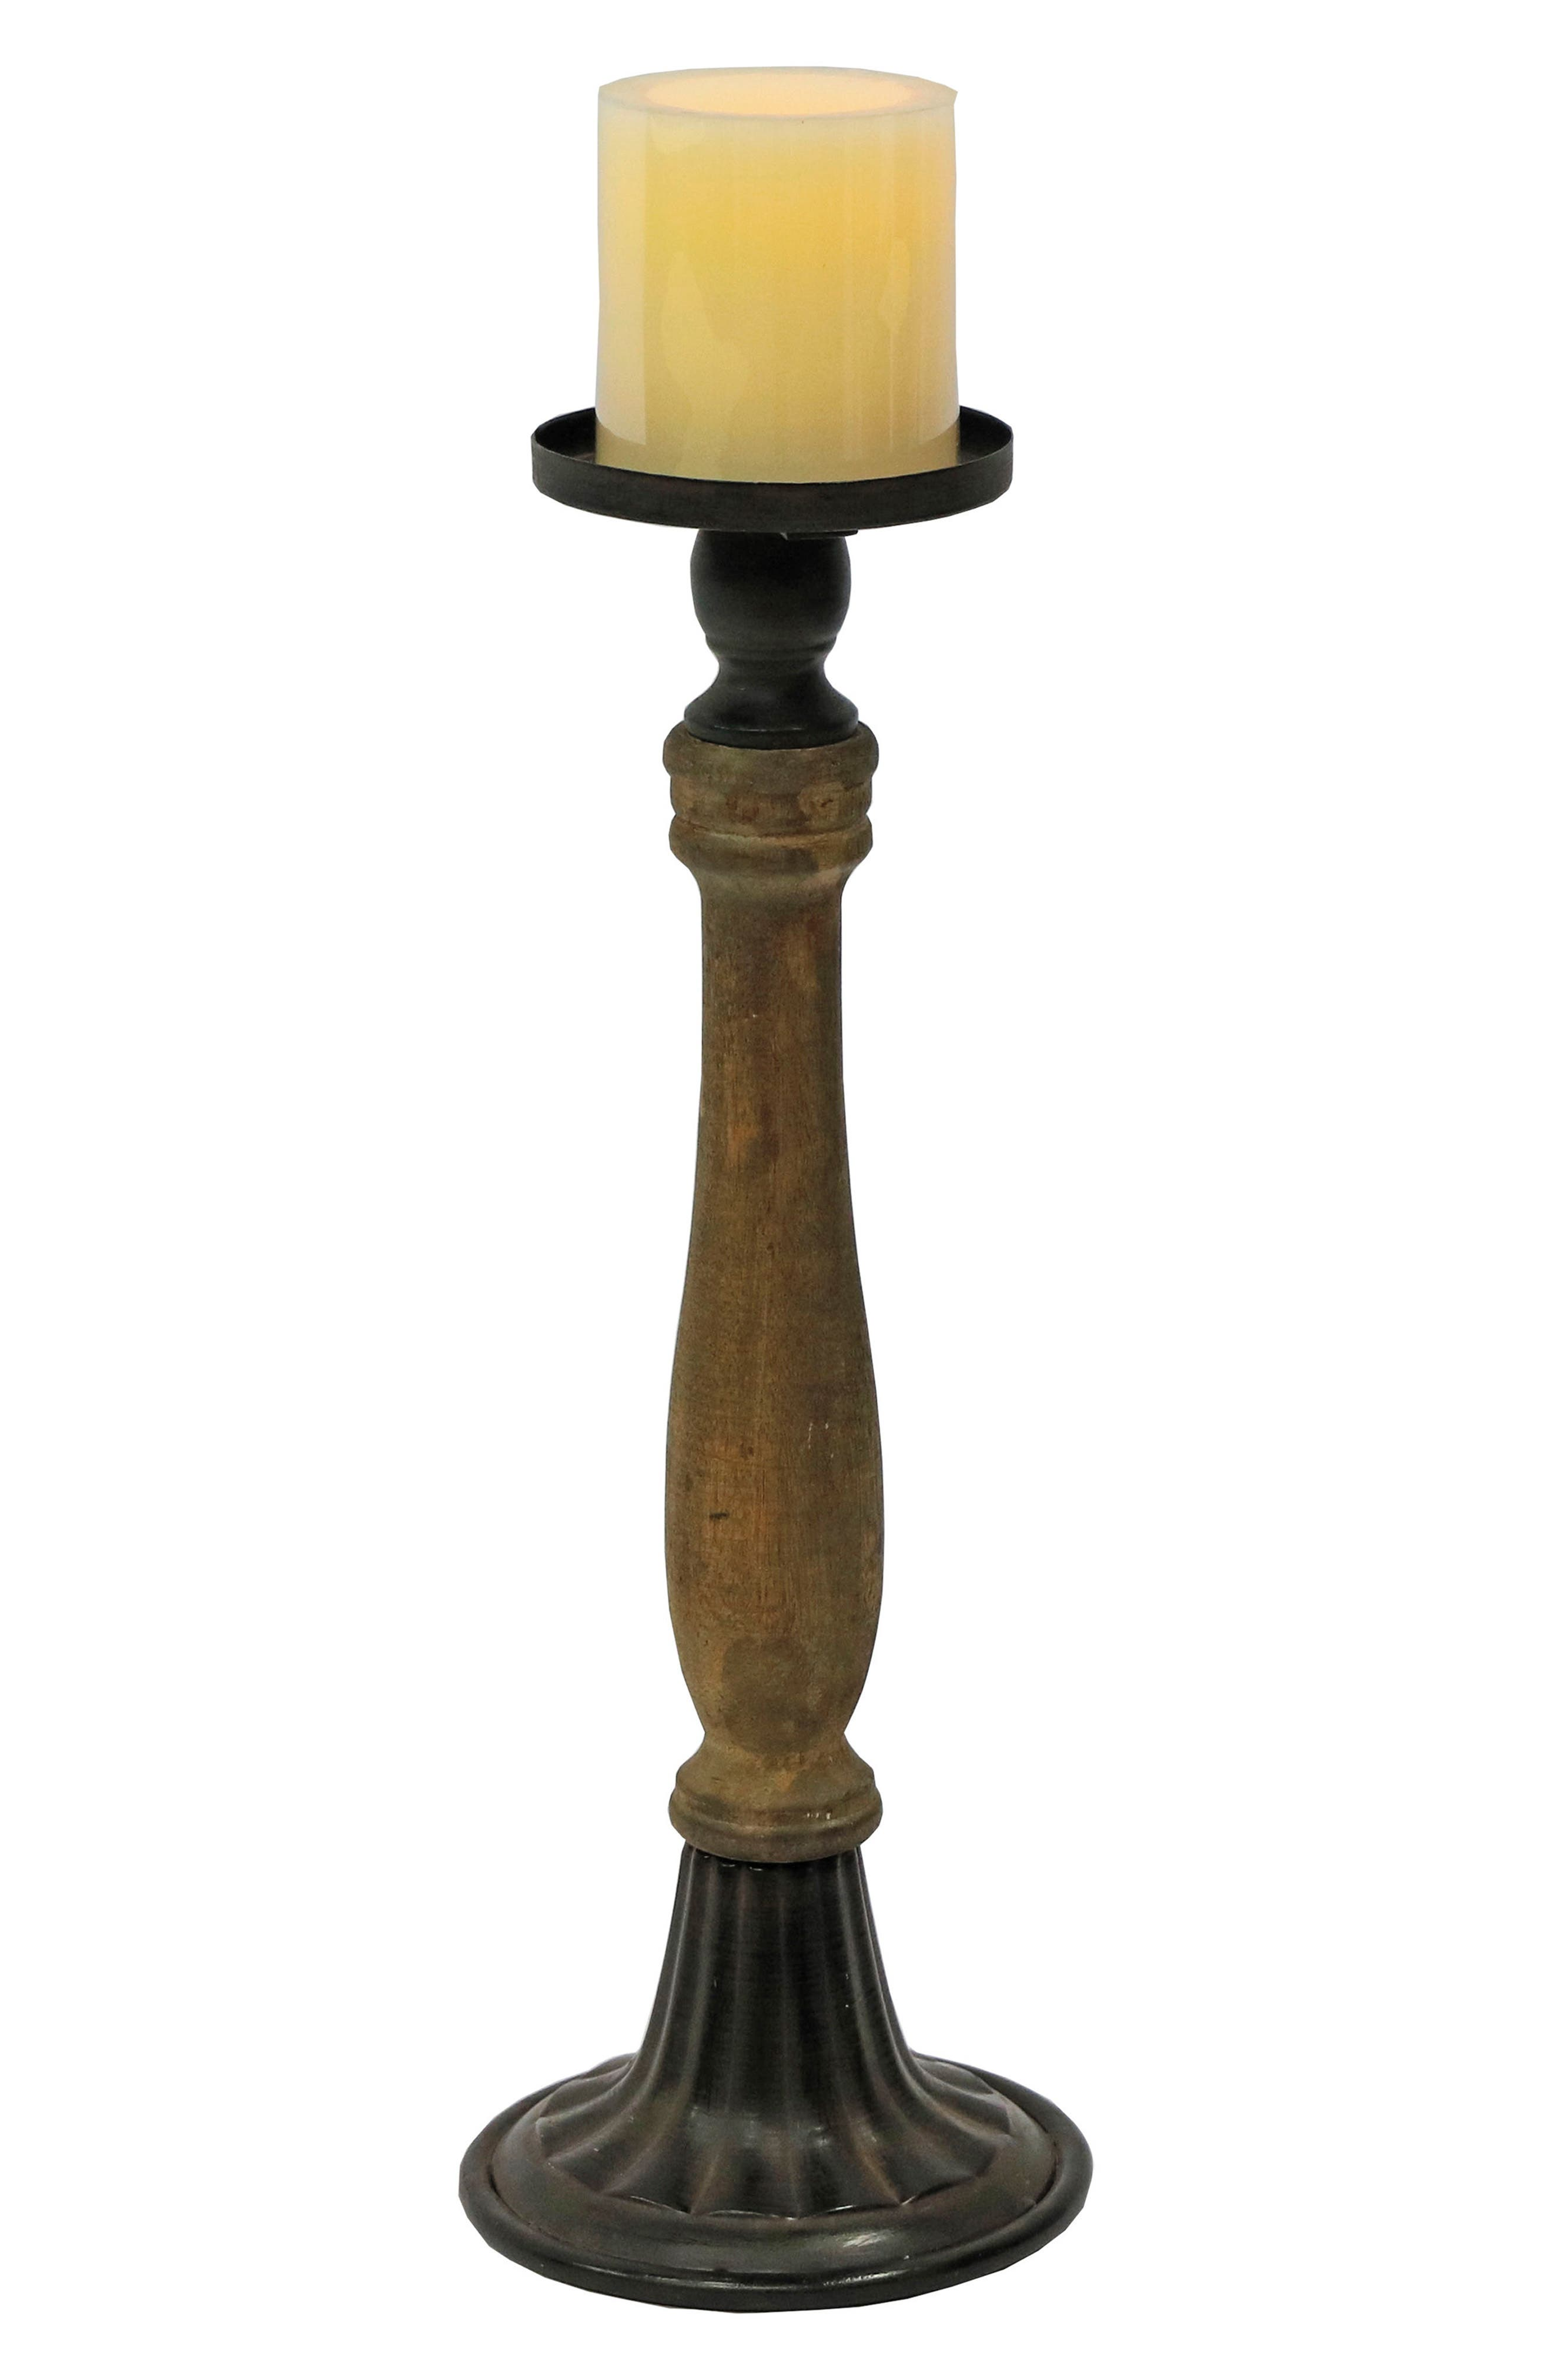 Main Image - Foreside Large Spindle Pillar Candle Holder